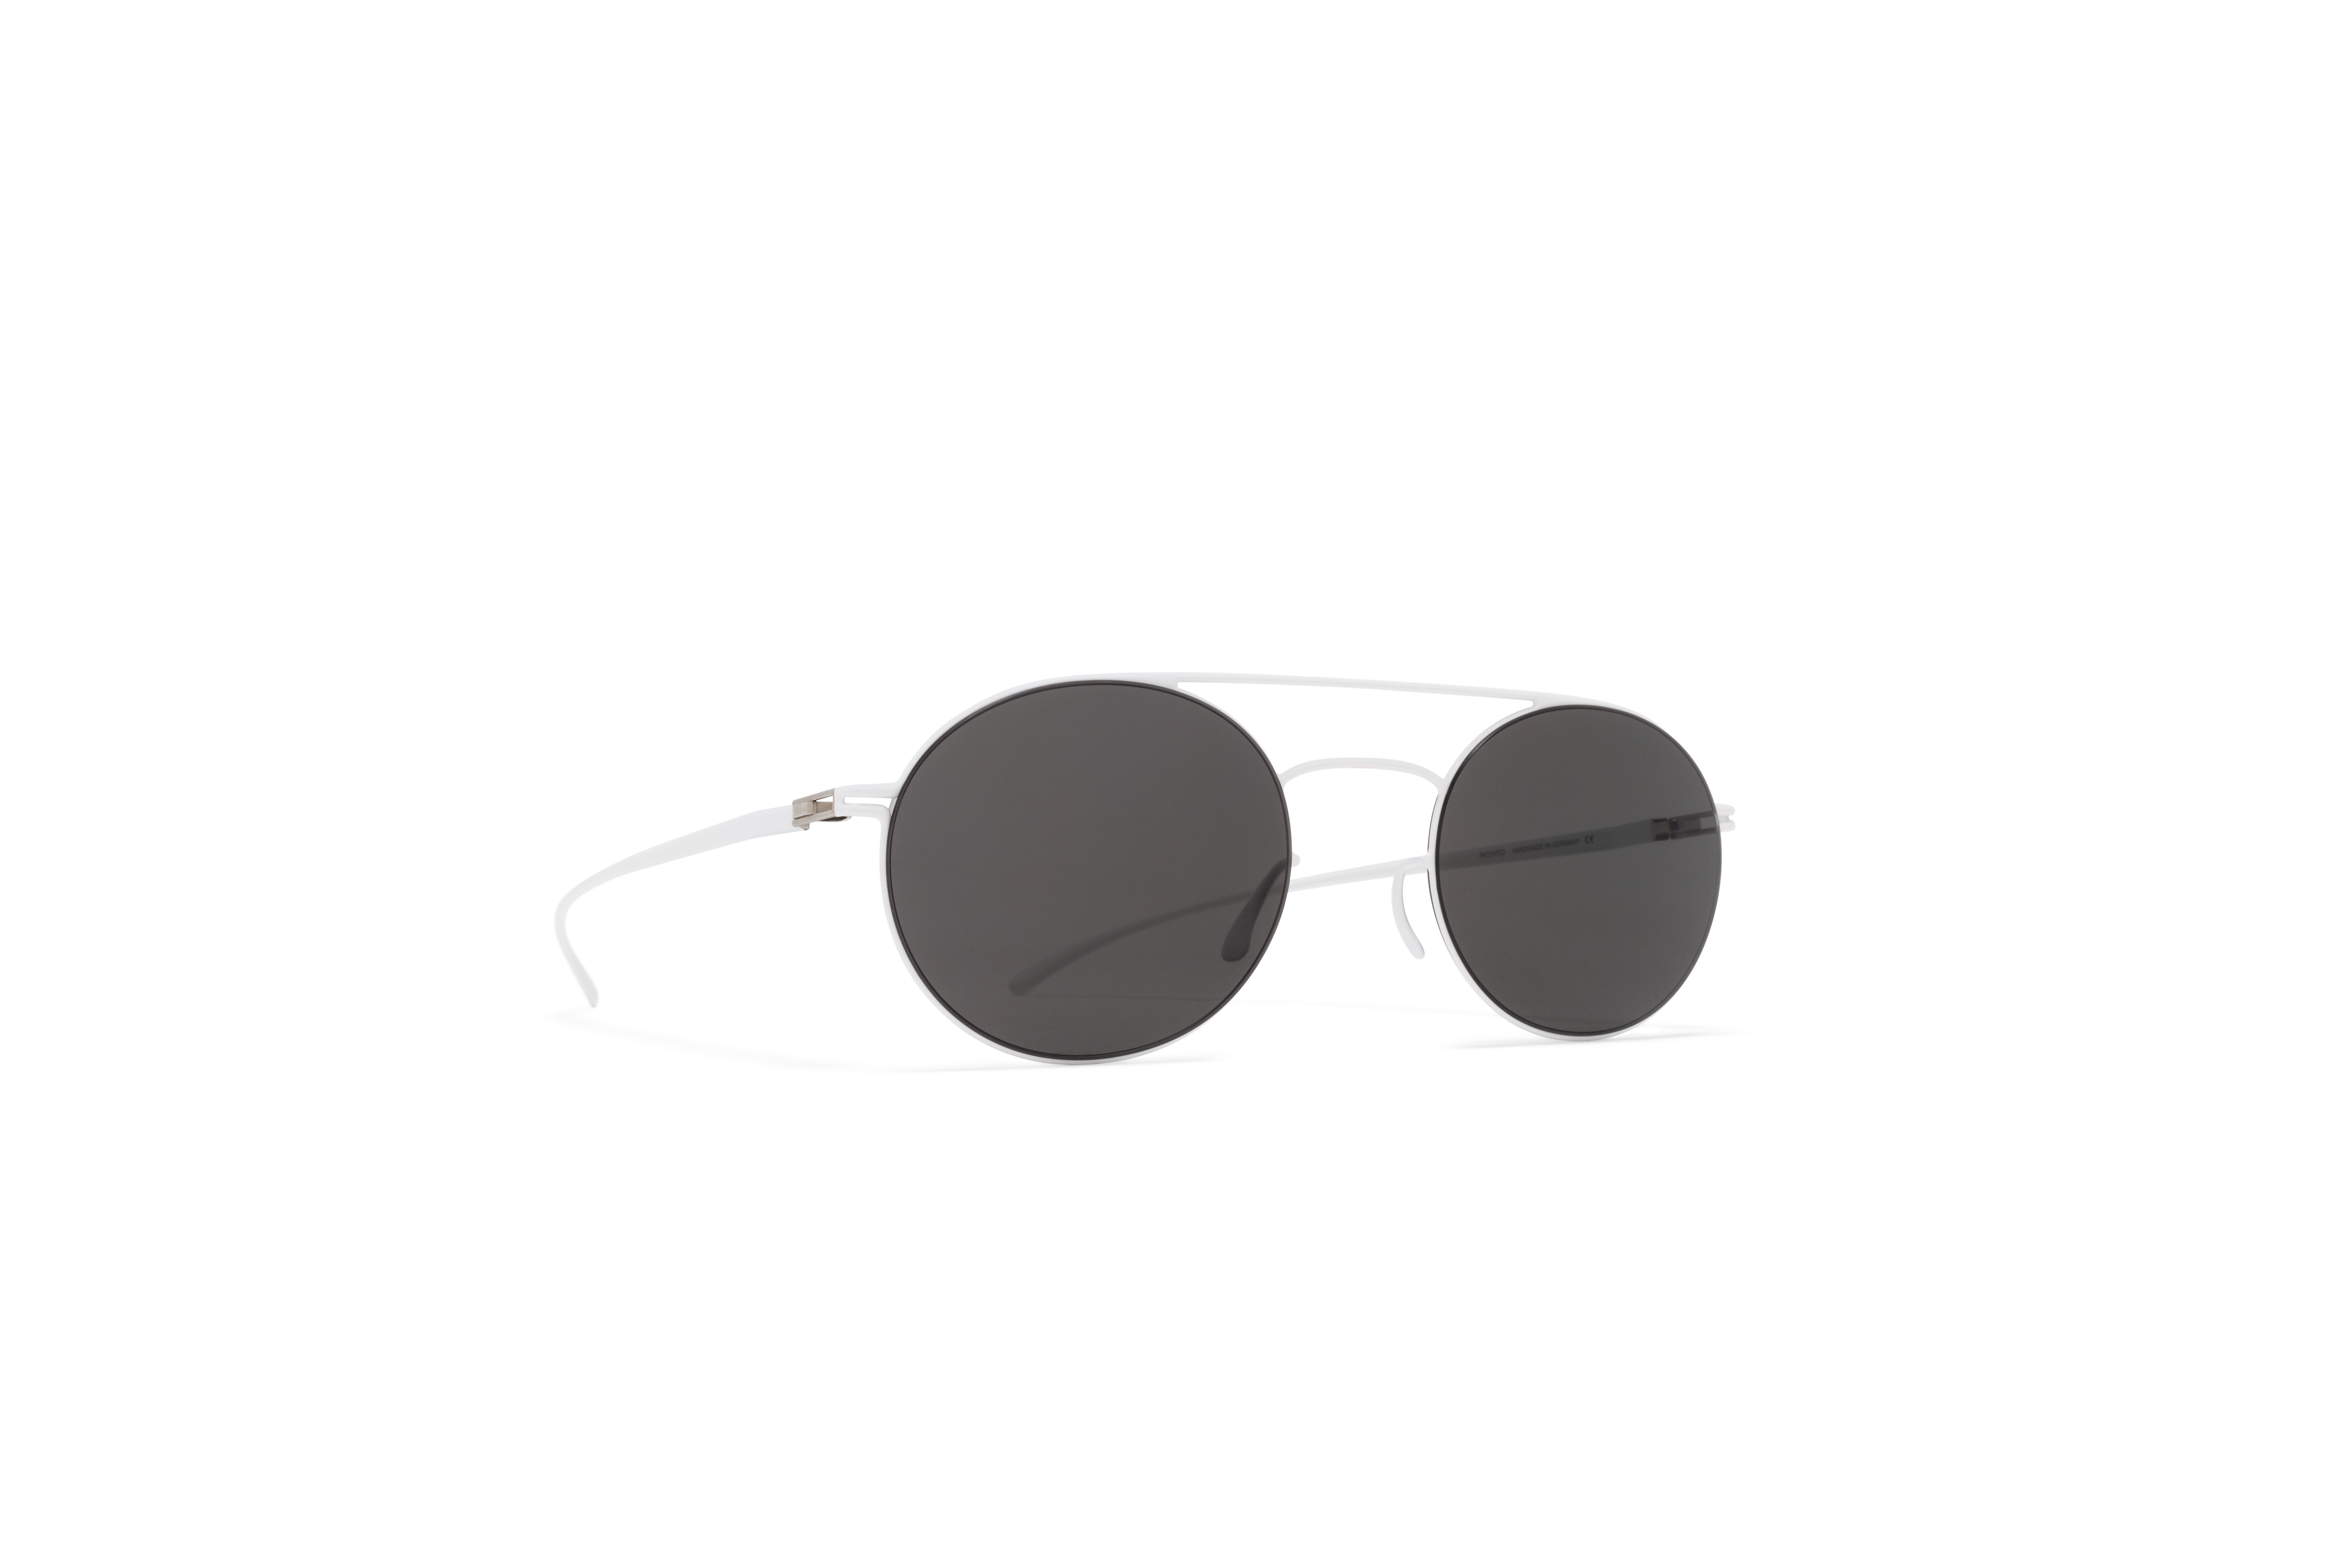 MYKITA Mm Sun Mmesse019 E13 White Dark Grey Soli59fb240dee630